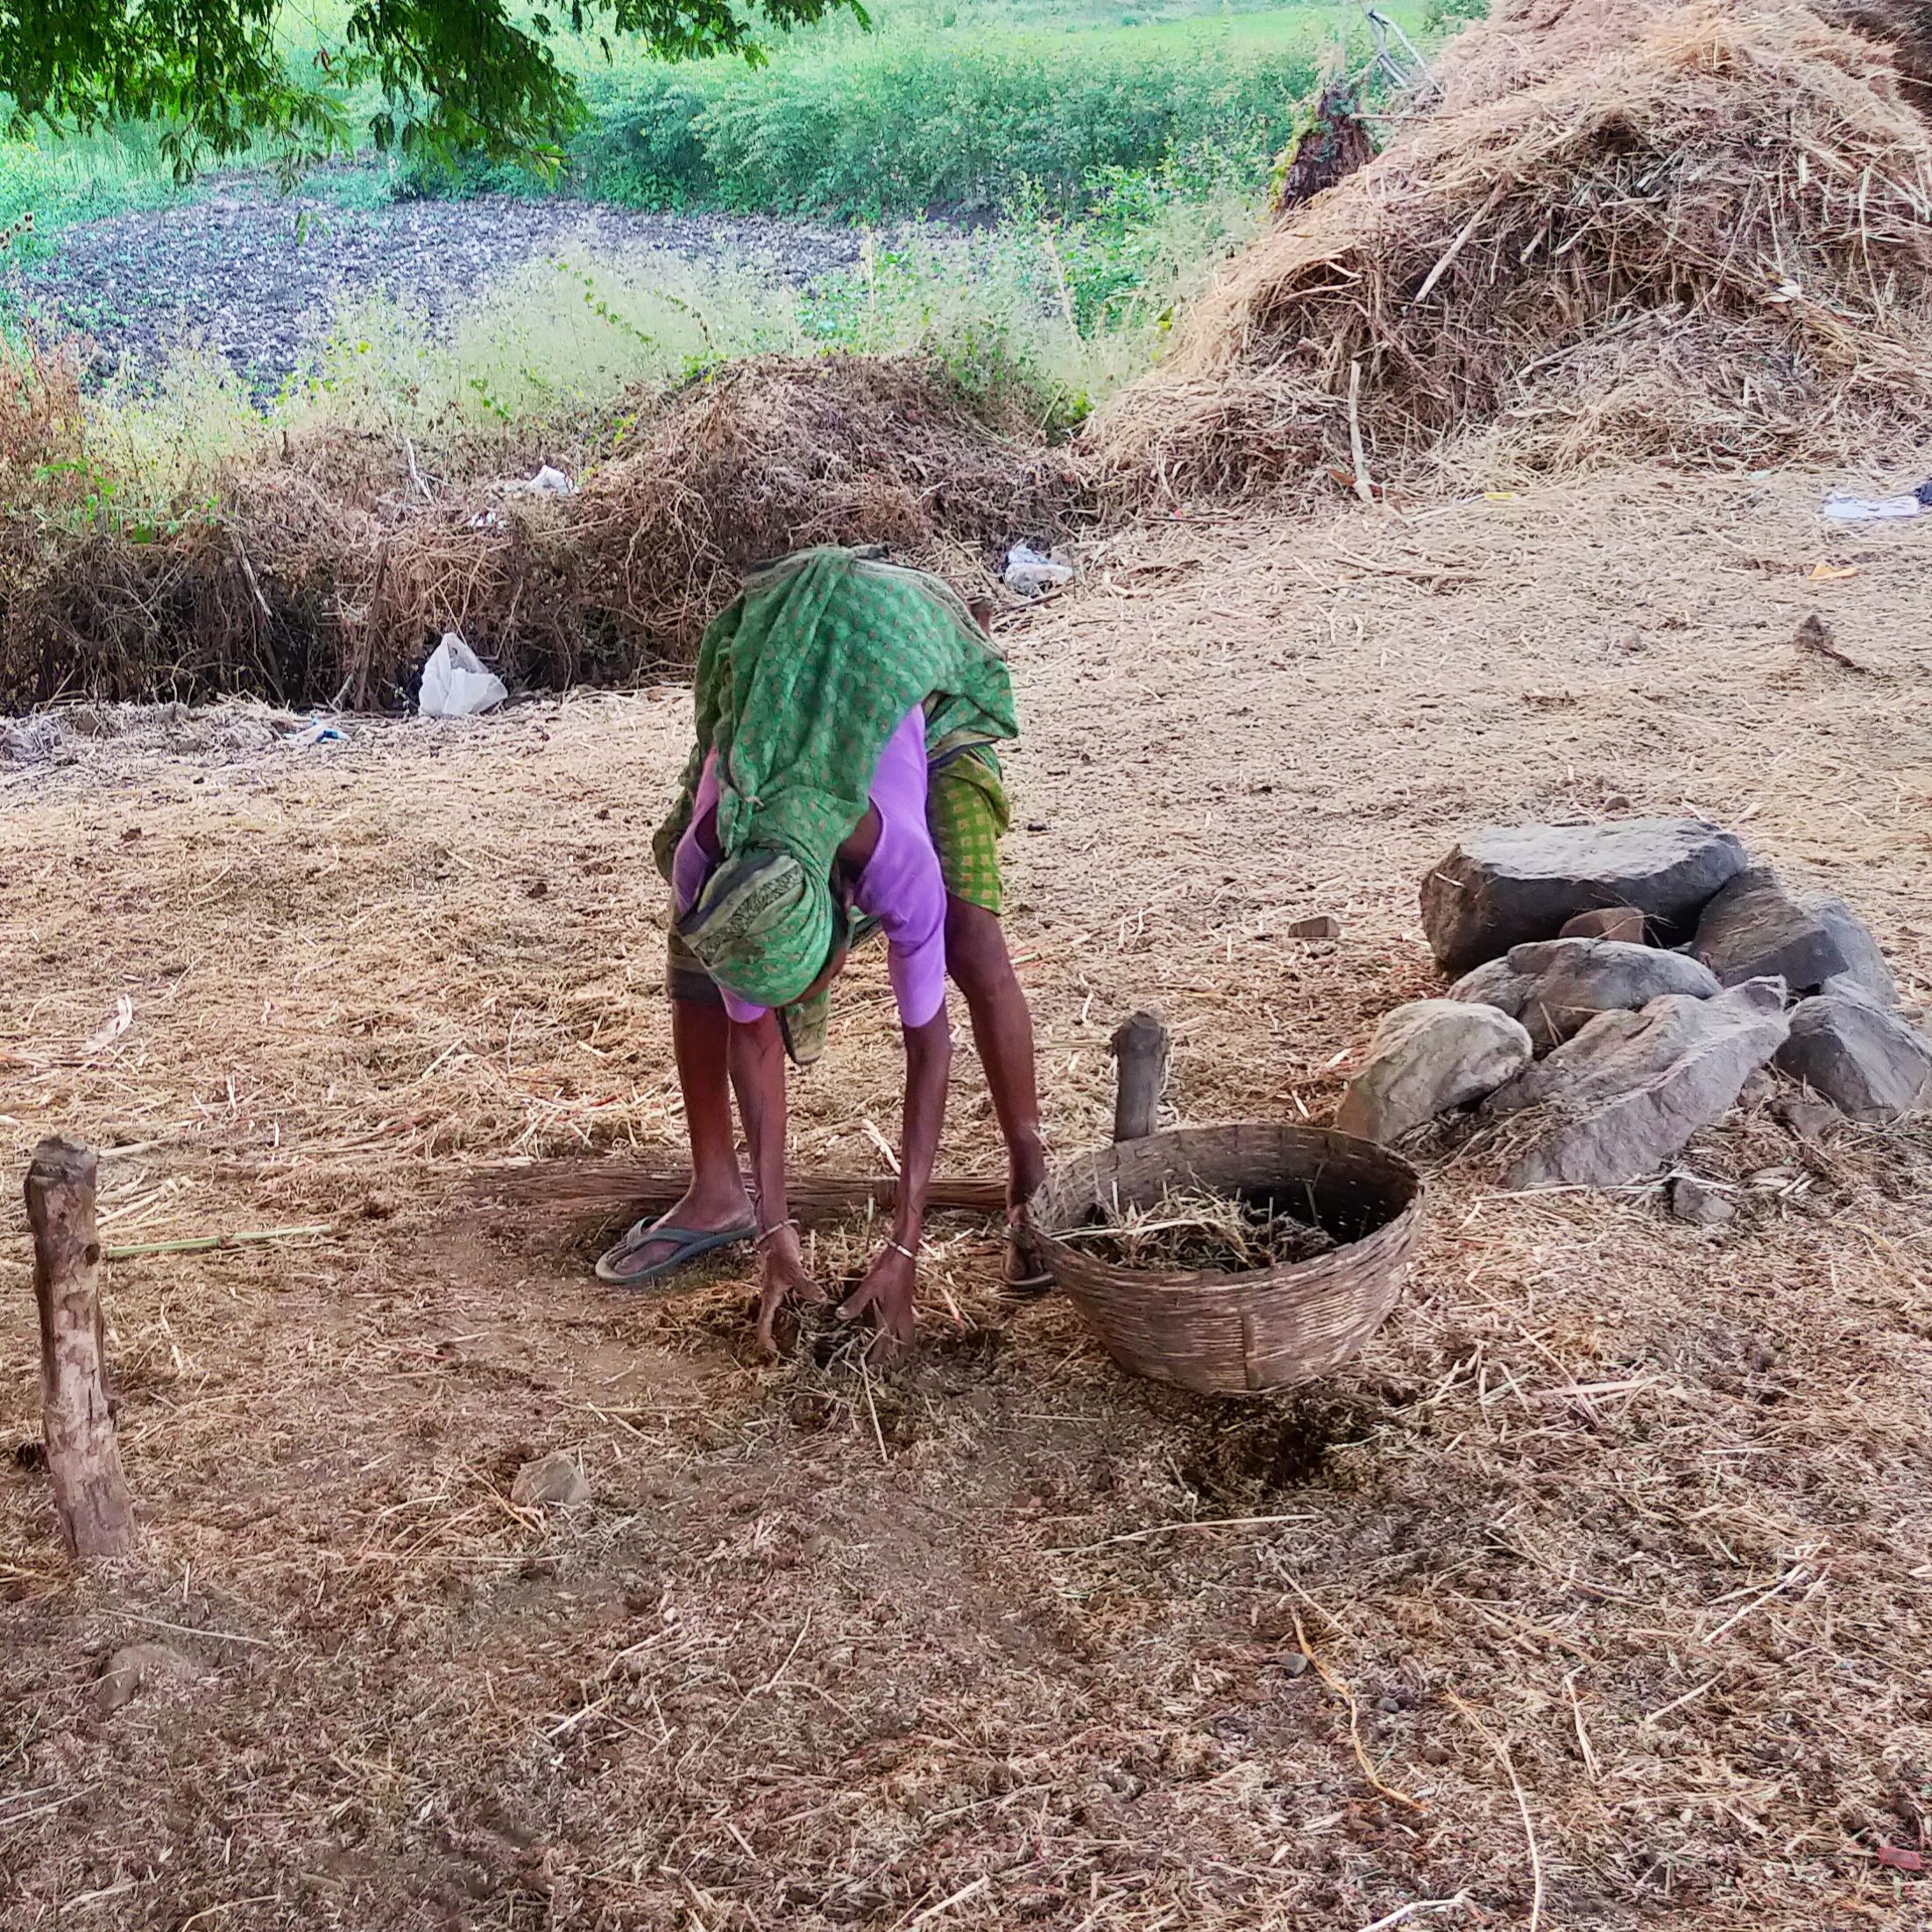 A farmer cleaning livestock's waste